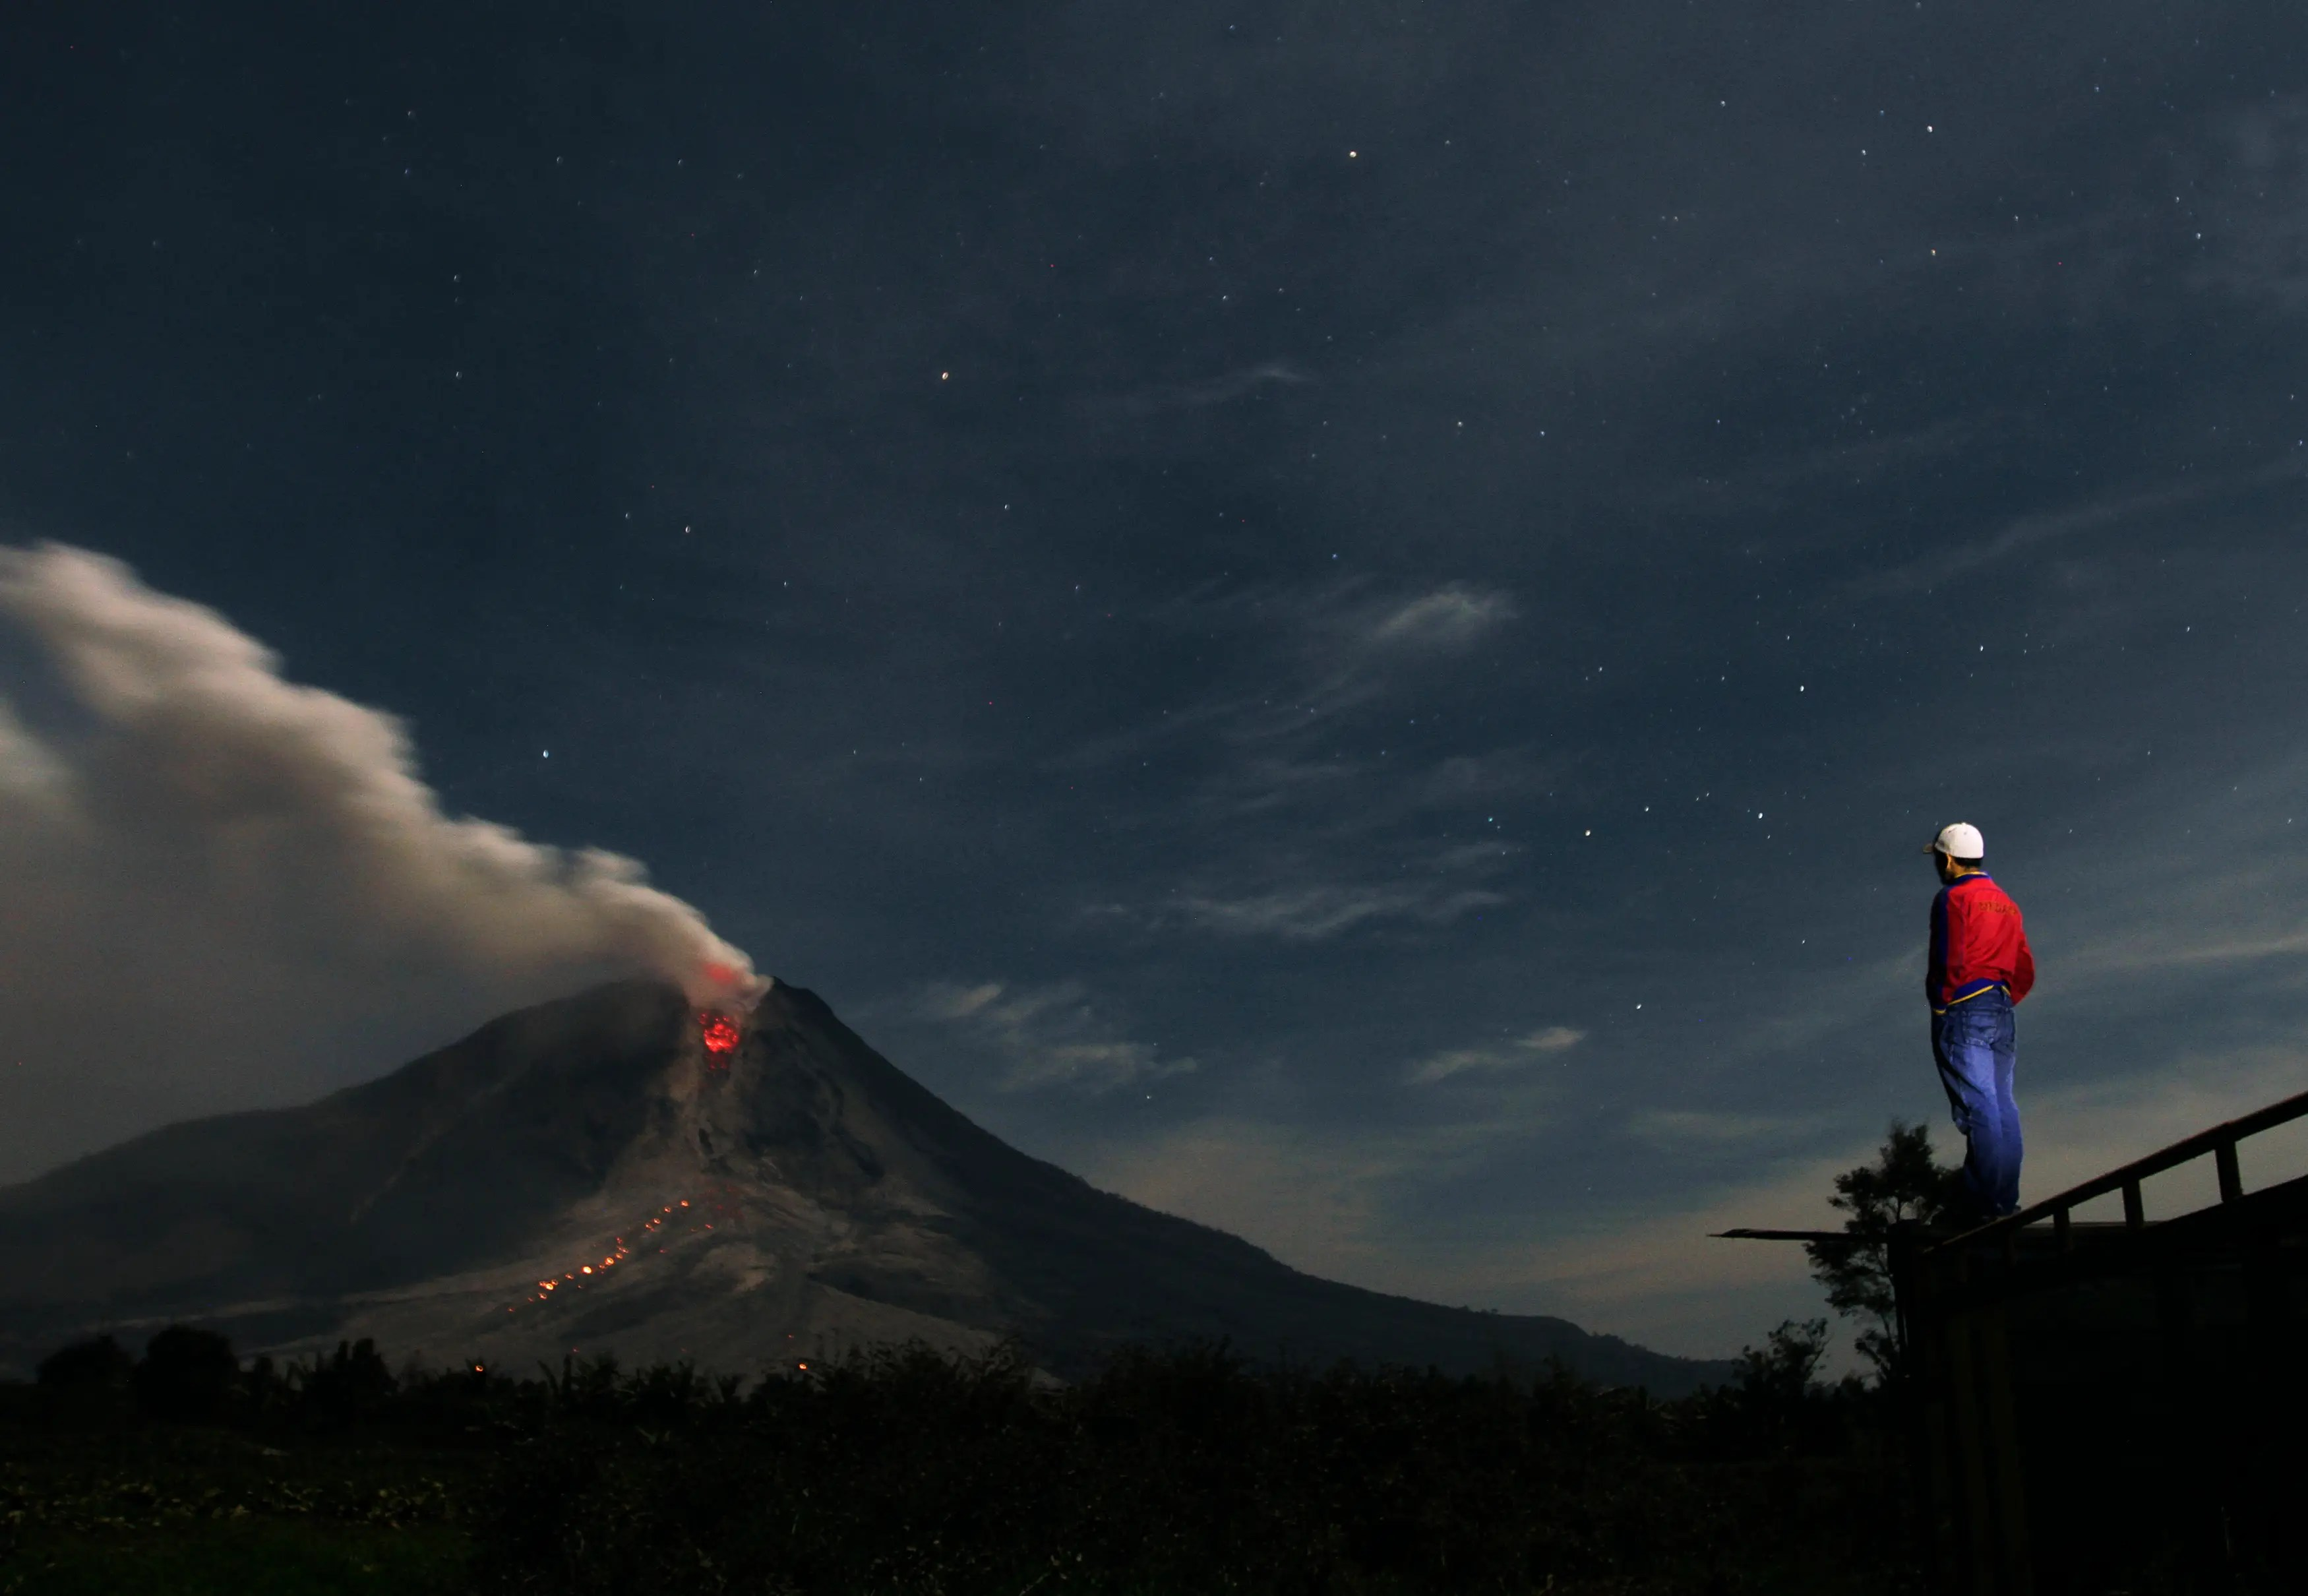 Mount Sinabung, a large volcano on Sumatra Island in Indonesia, has been erupting on and off since September of 2013, covering the area with ash and forcing thousands of people to flee their homes.